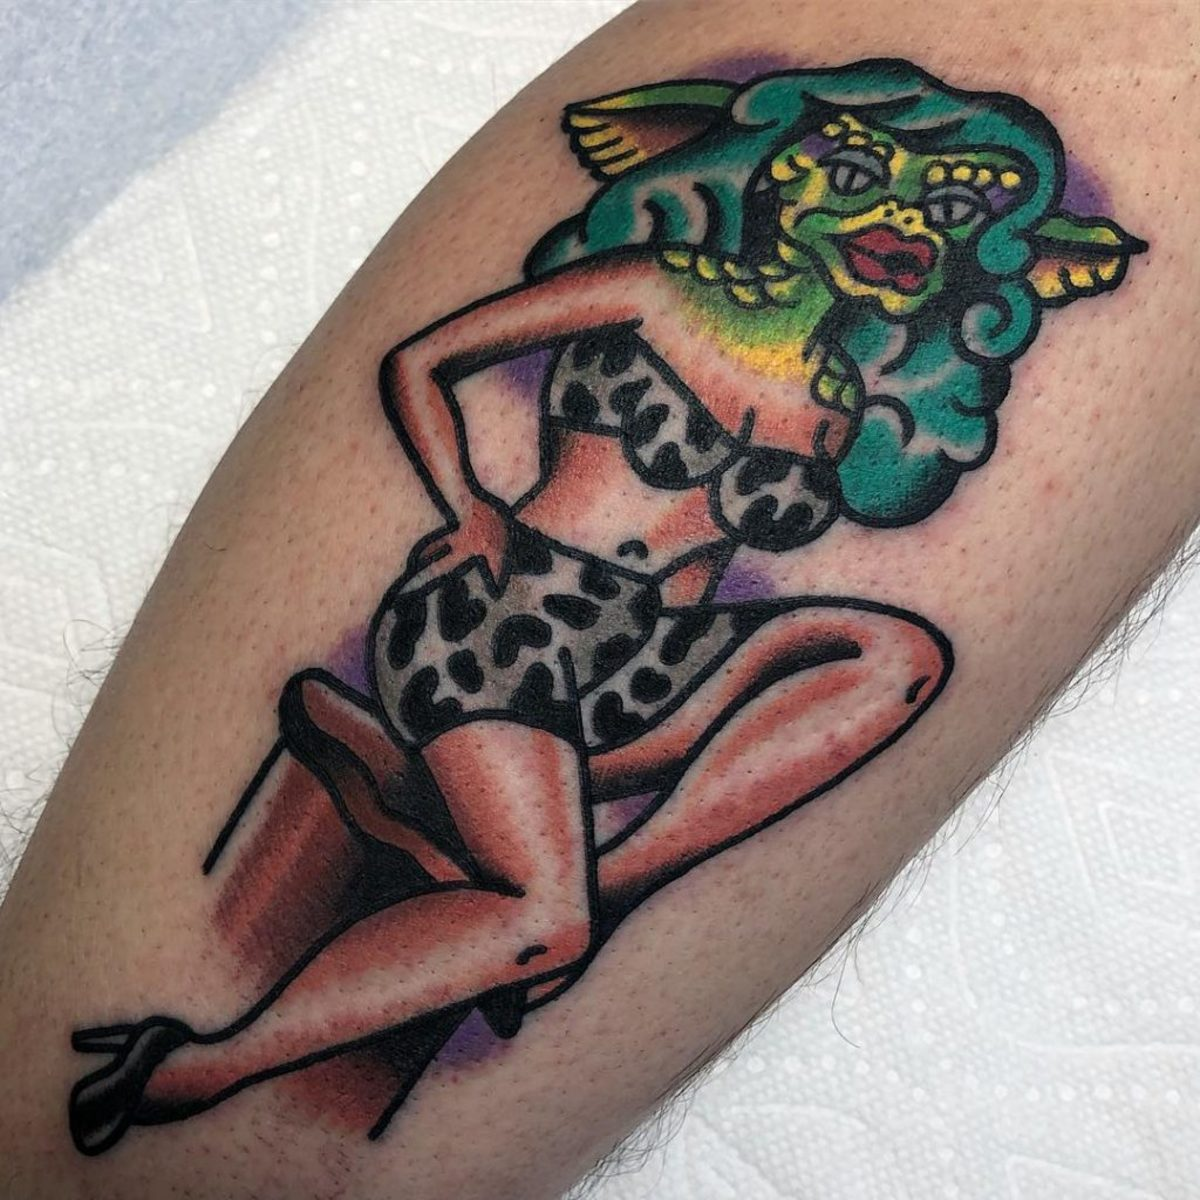 Tattoo by @skull_and_snake